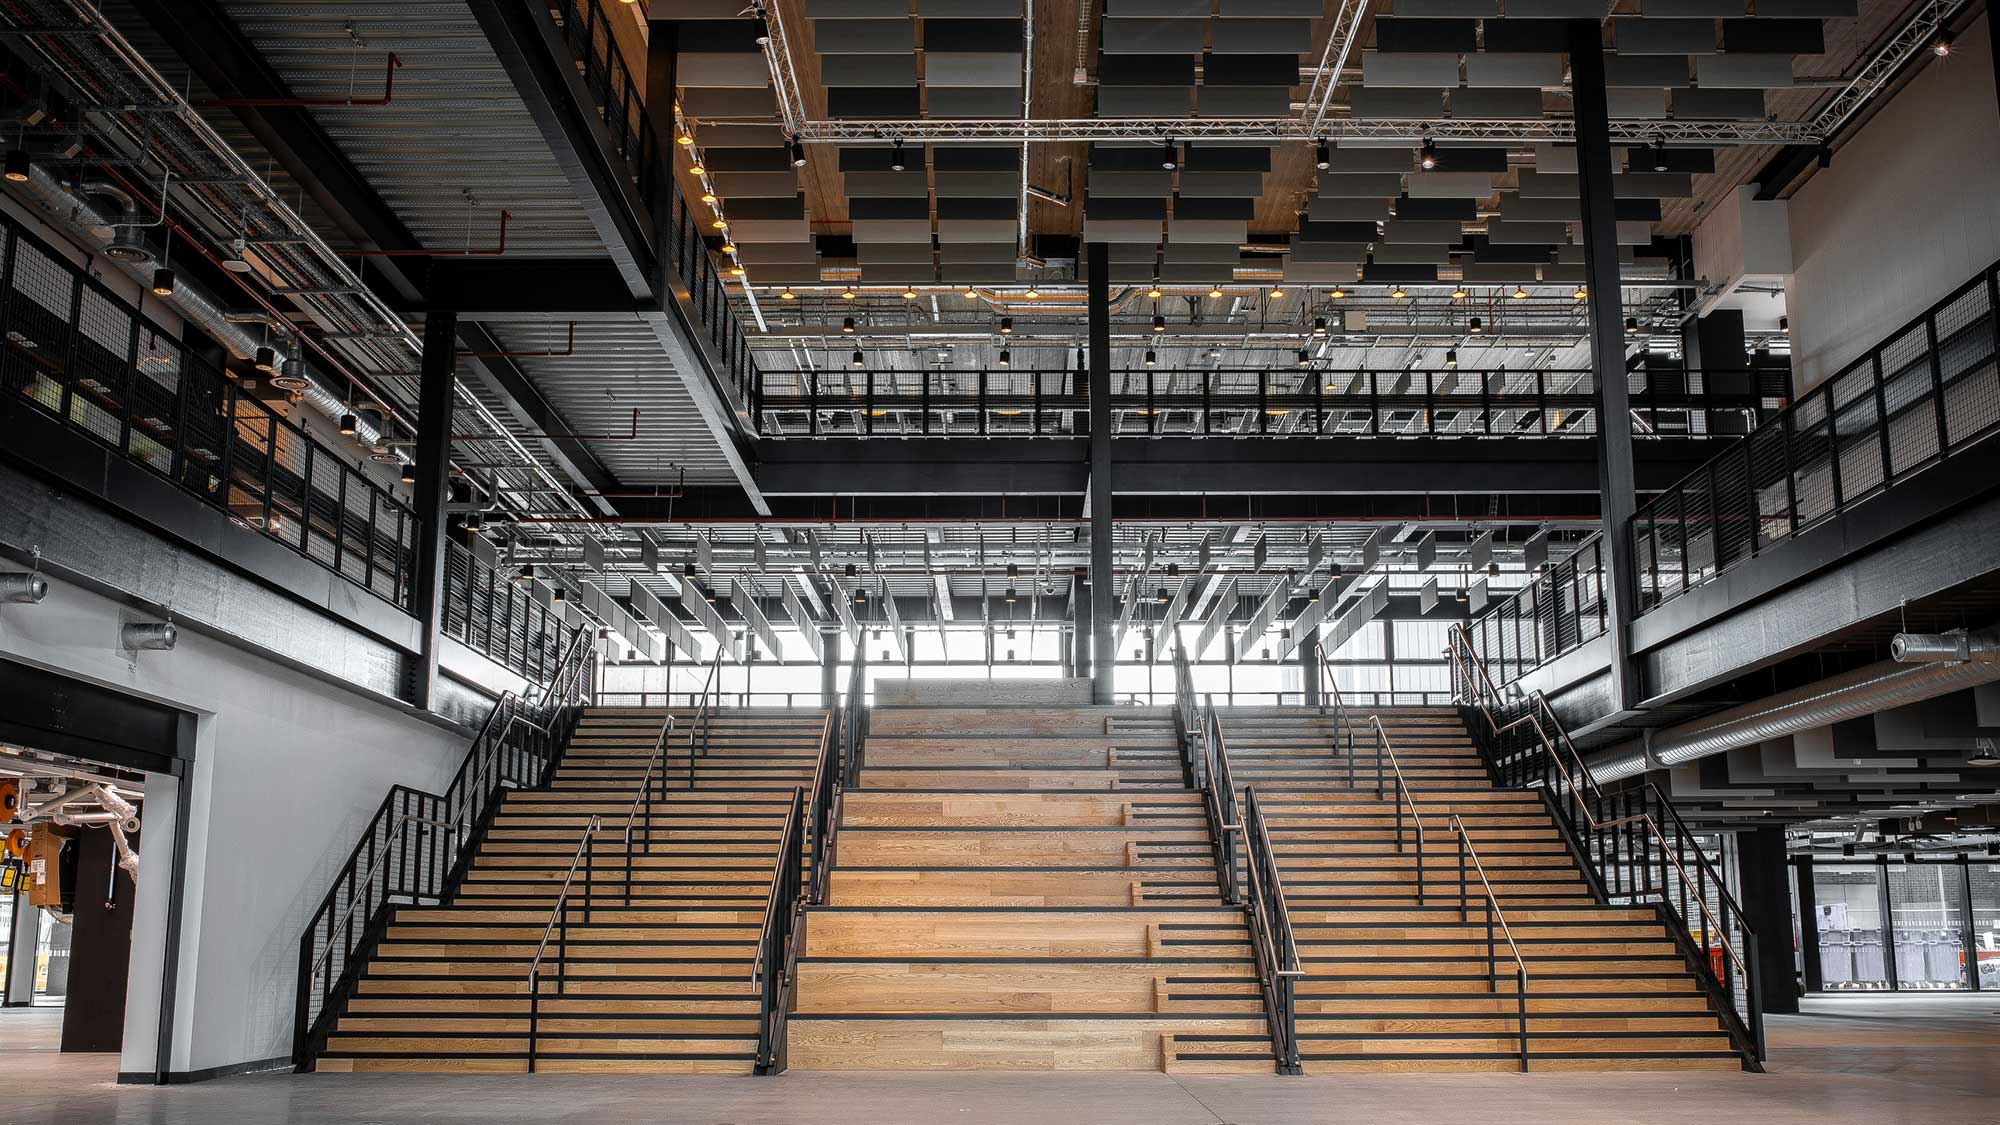 Stairs & Structural Steelwork Project - Manchester Engineering Campus Development (MECD)